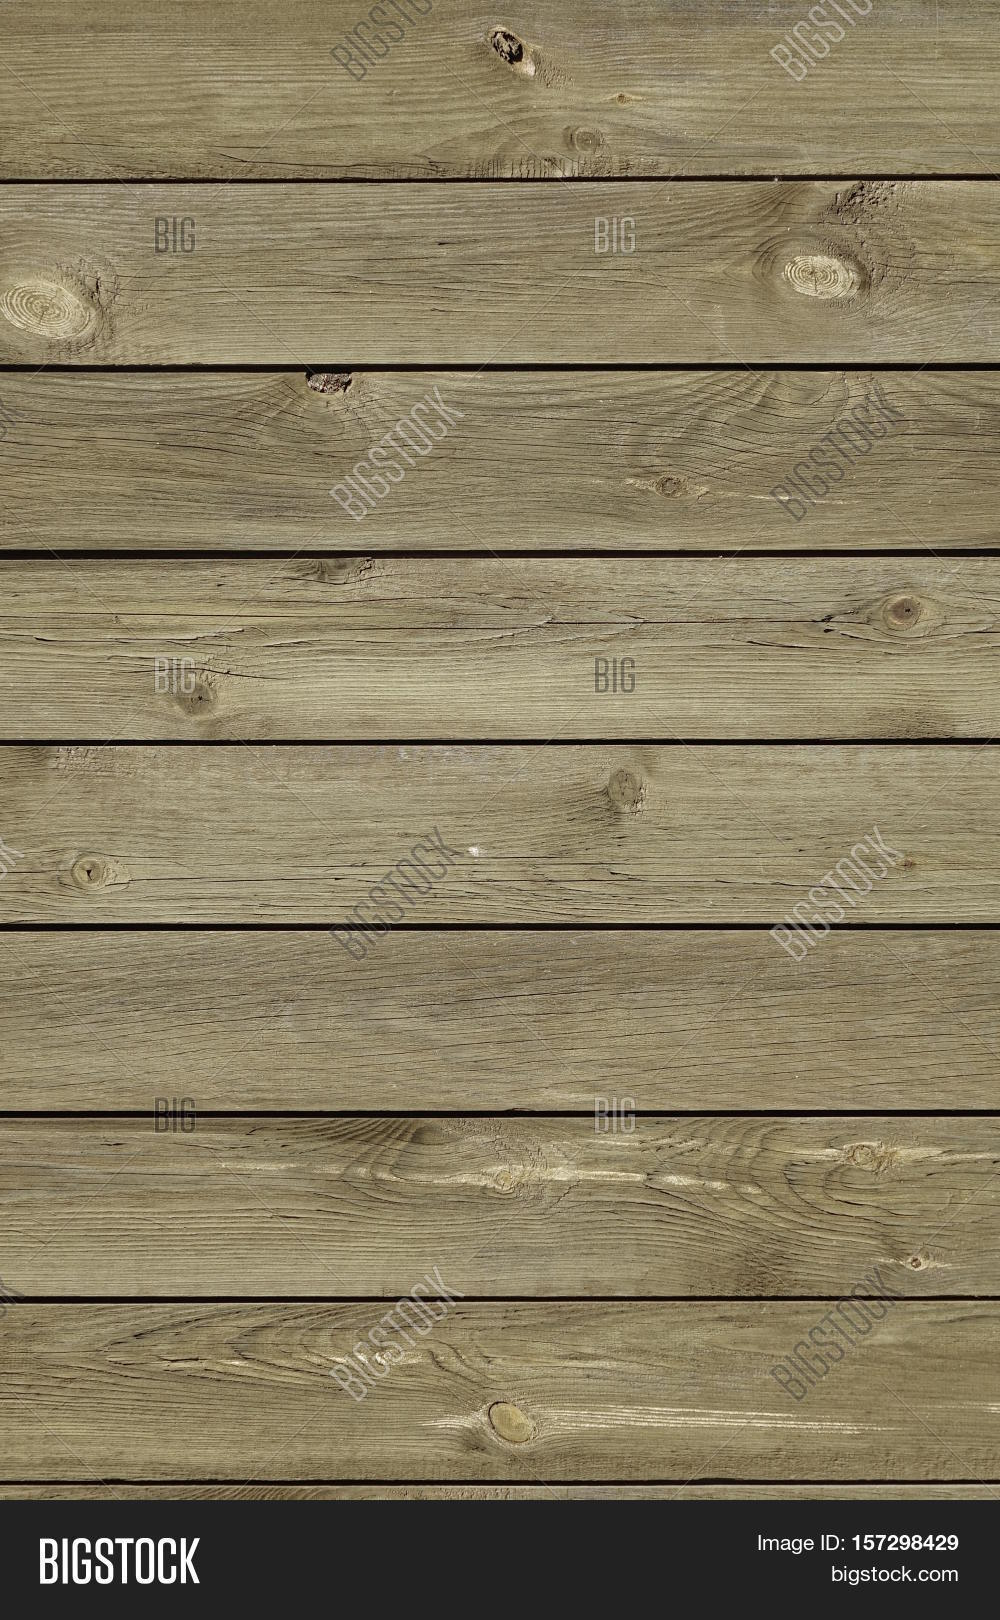 Green Barn Wooden Wall Image Photo Free Trial